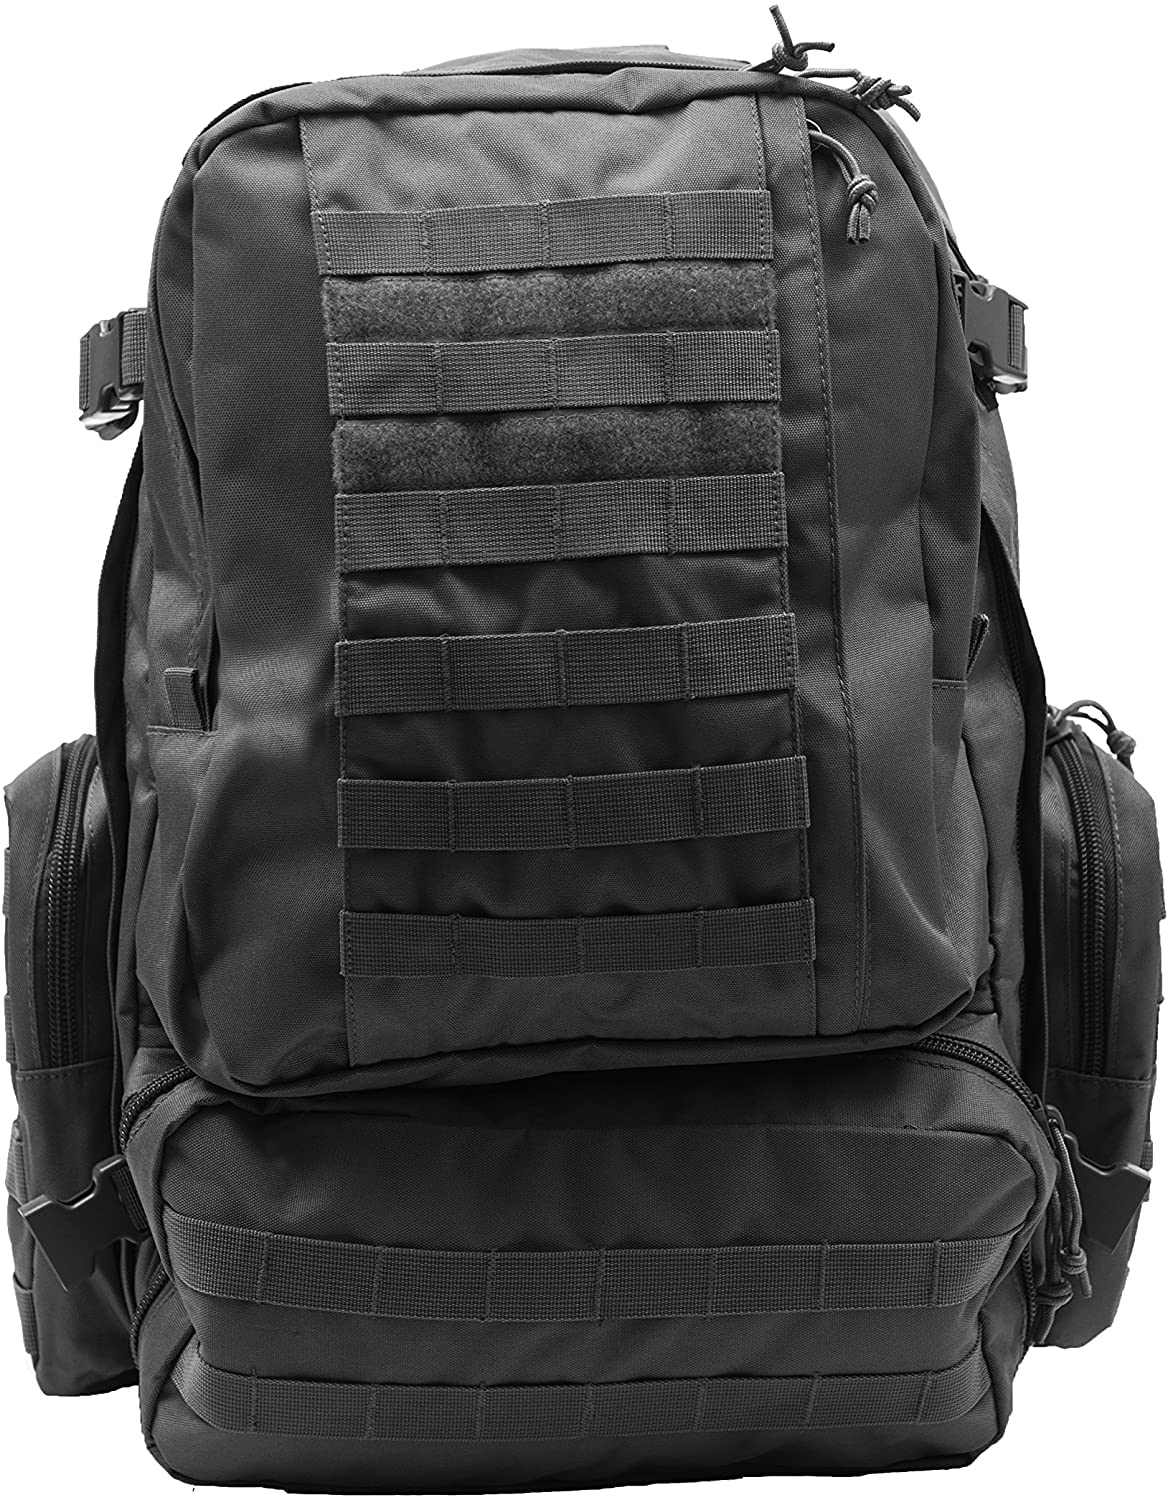 World Famous Sports Large 3 Day Tactical Backpack